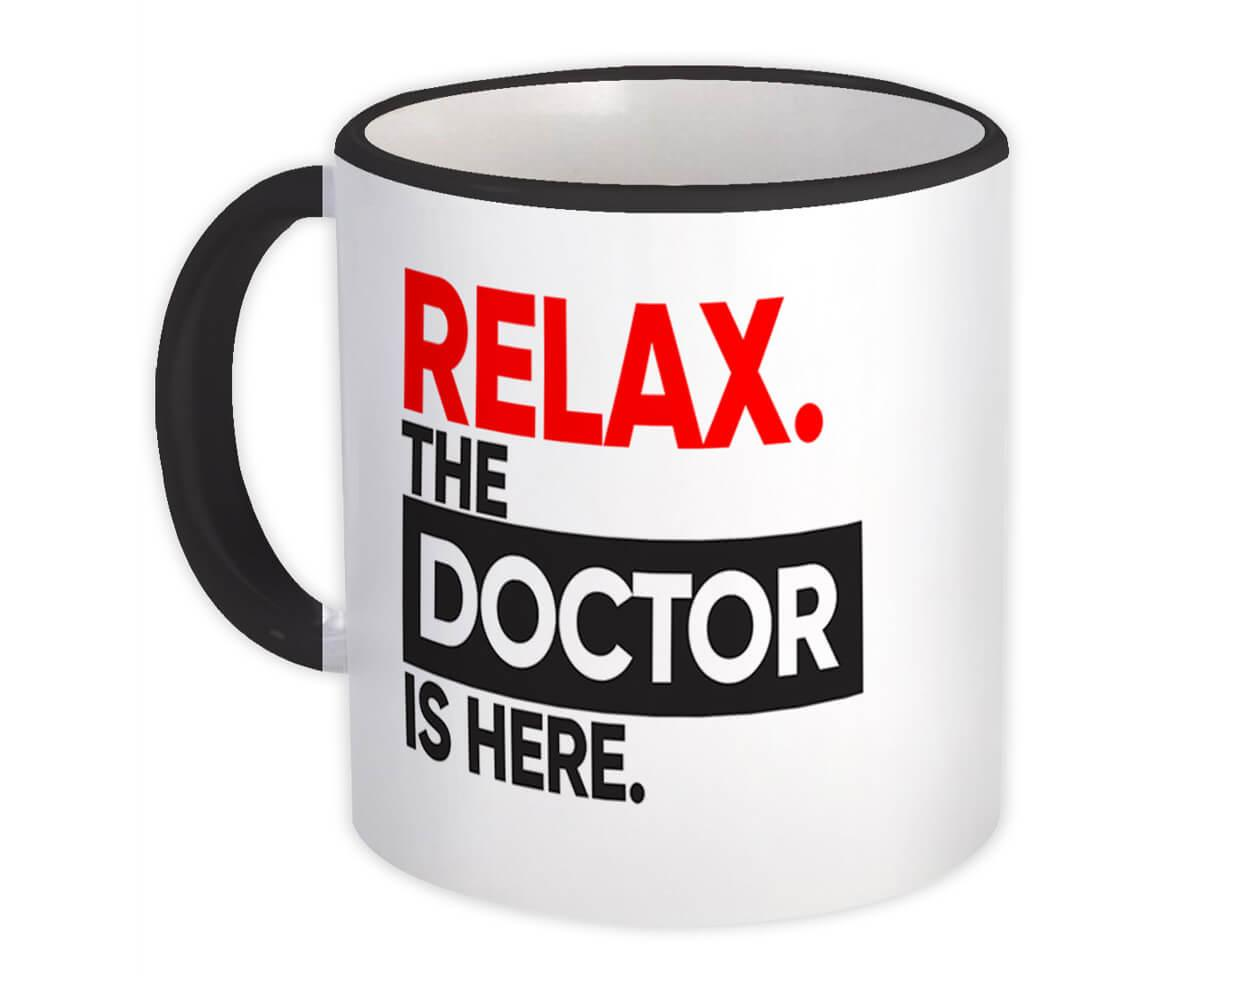 Relax The Doctor is Here : Gift Mug MD Medicine Office Funny Humor Coworker